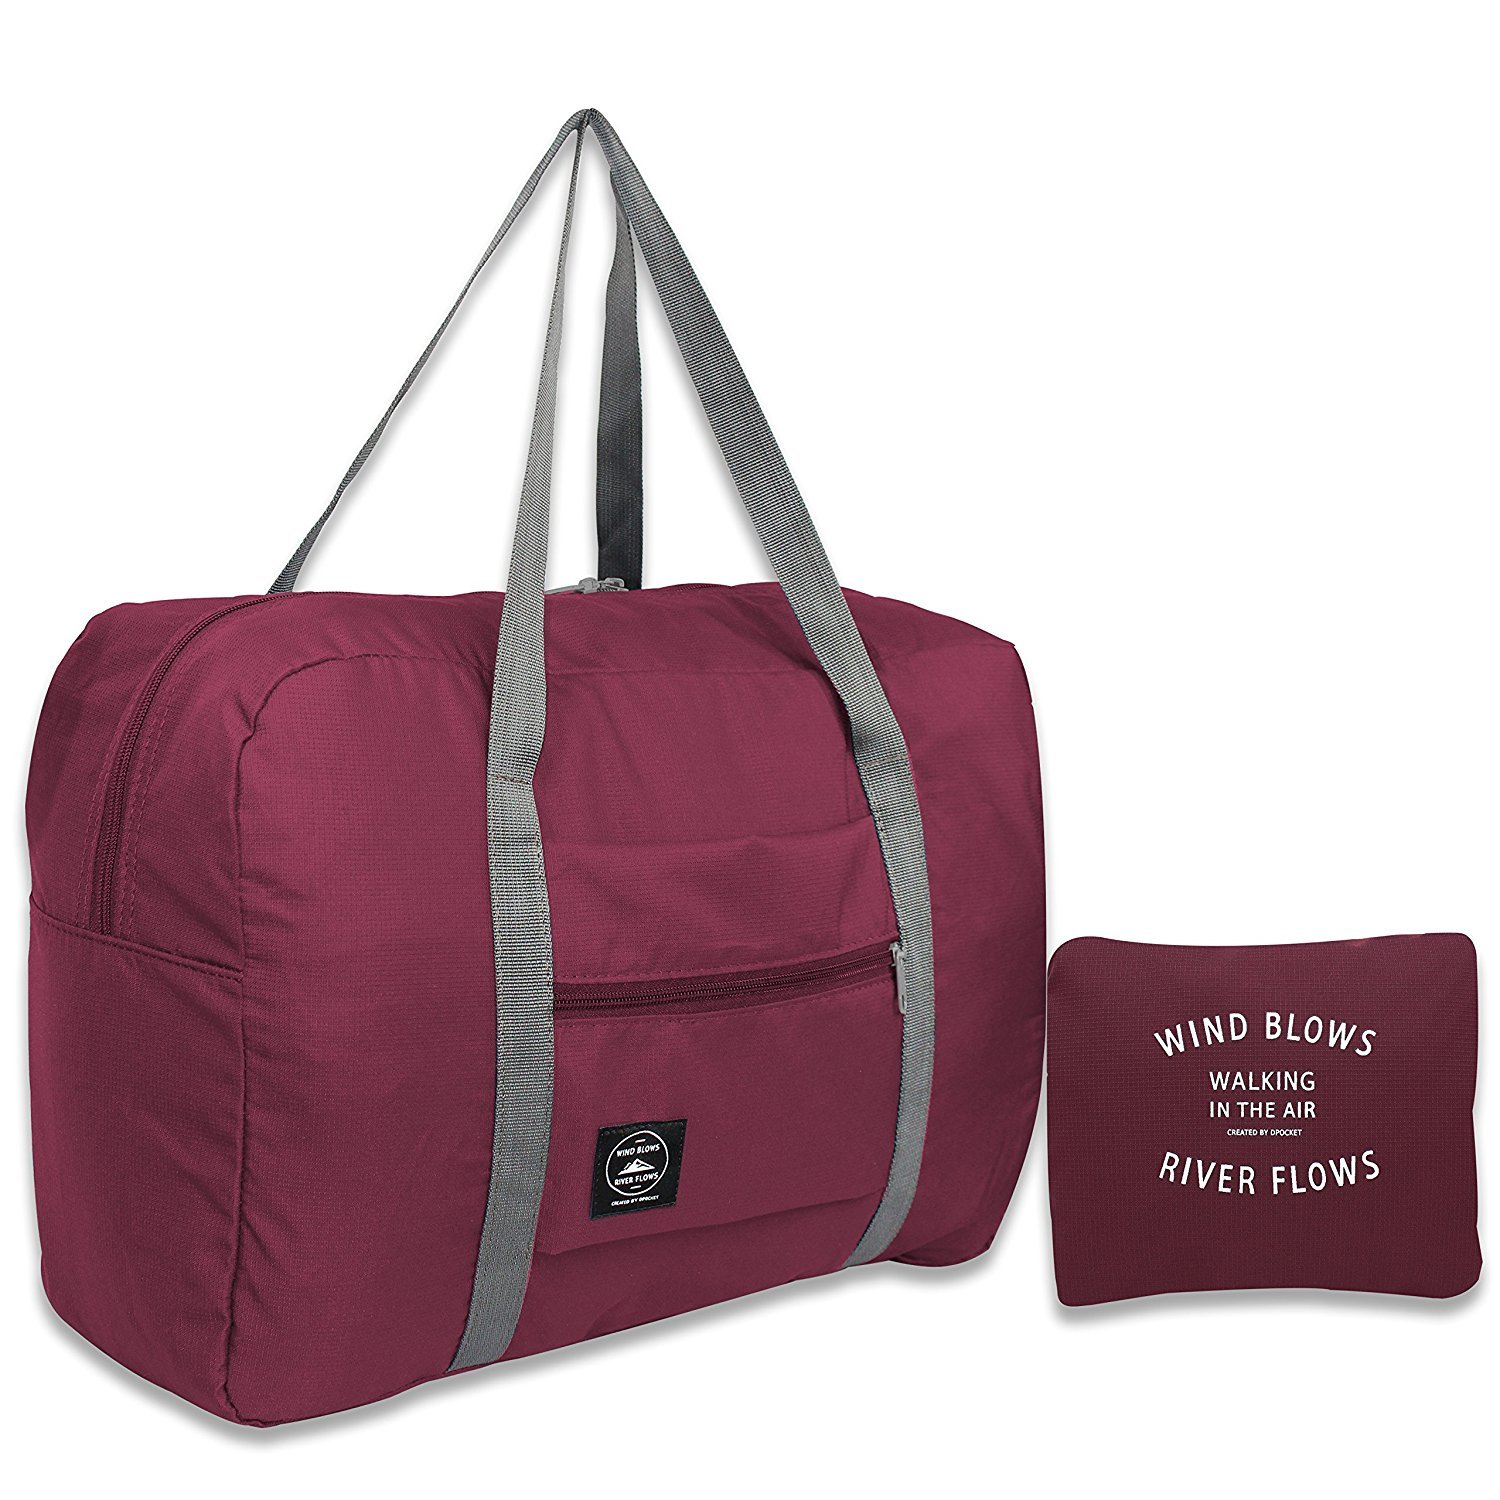 Travel Foldable Duffel Bag for Women & Men, Waterproof Lightweight Travel Bag for Sport, Gym, Vacation (Style 1-Wine Red)